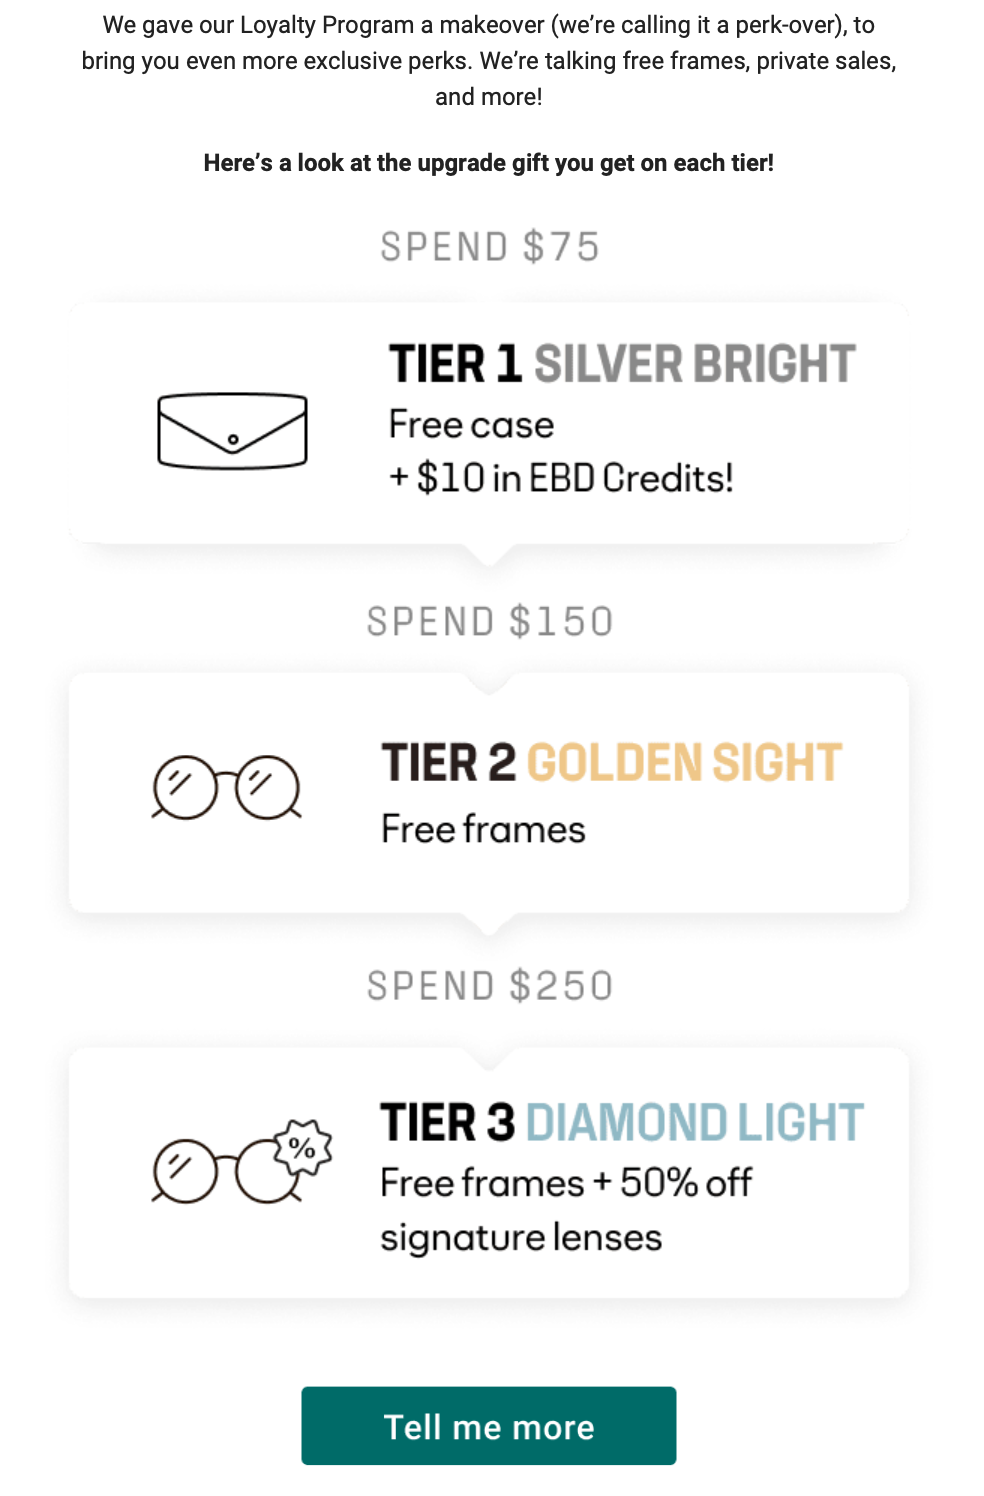 EyeBuyDirect loyalty program